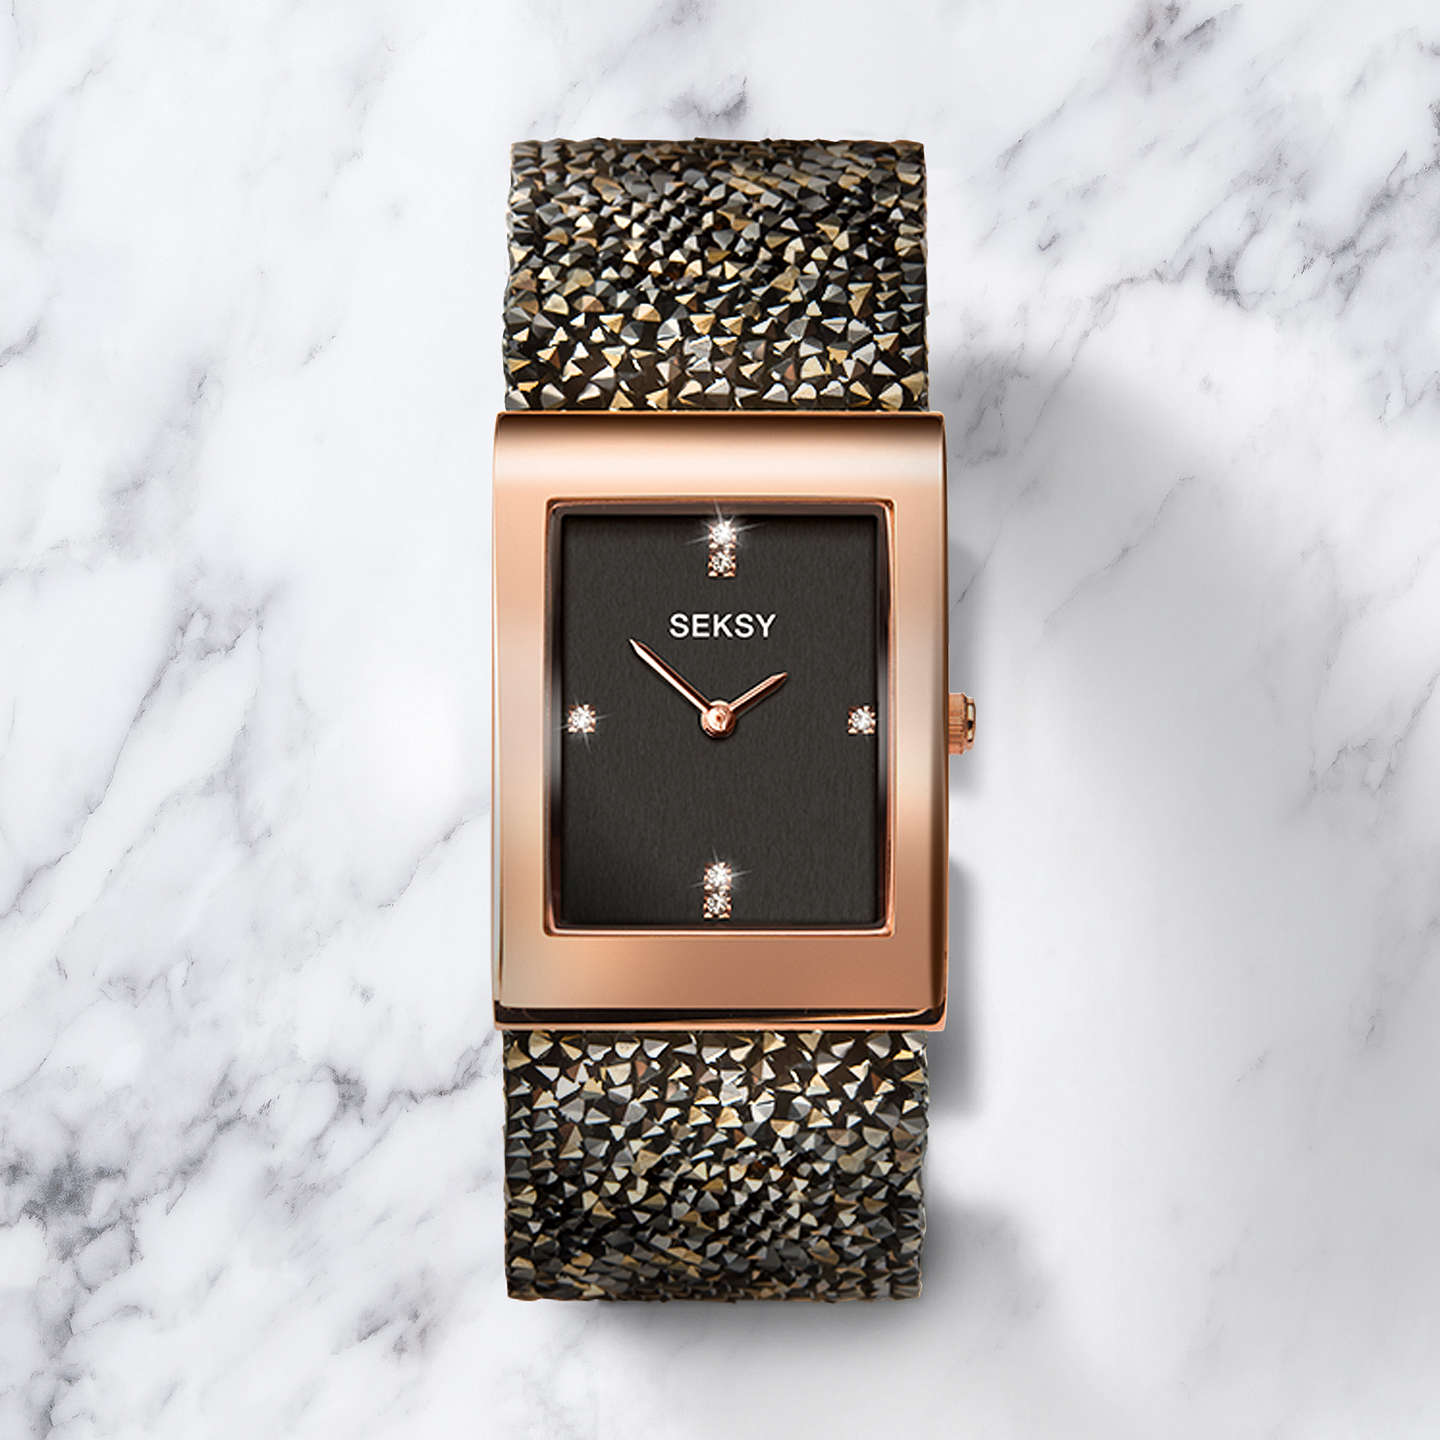 BuySekonda Women's Seksy Swarovski Crystal and Crystal Rock Bracelet Strap Watch, Brown/Black 2653.37 Online at johnlewis.com